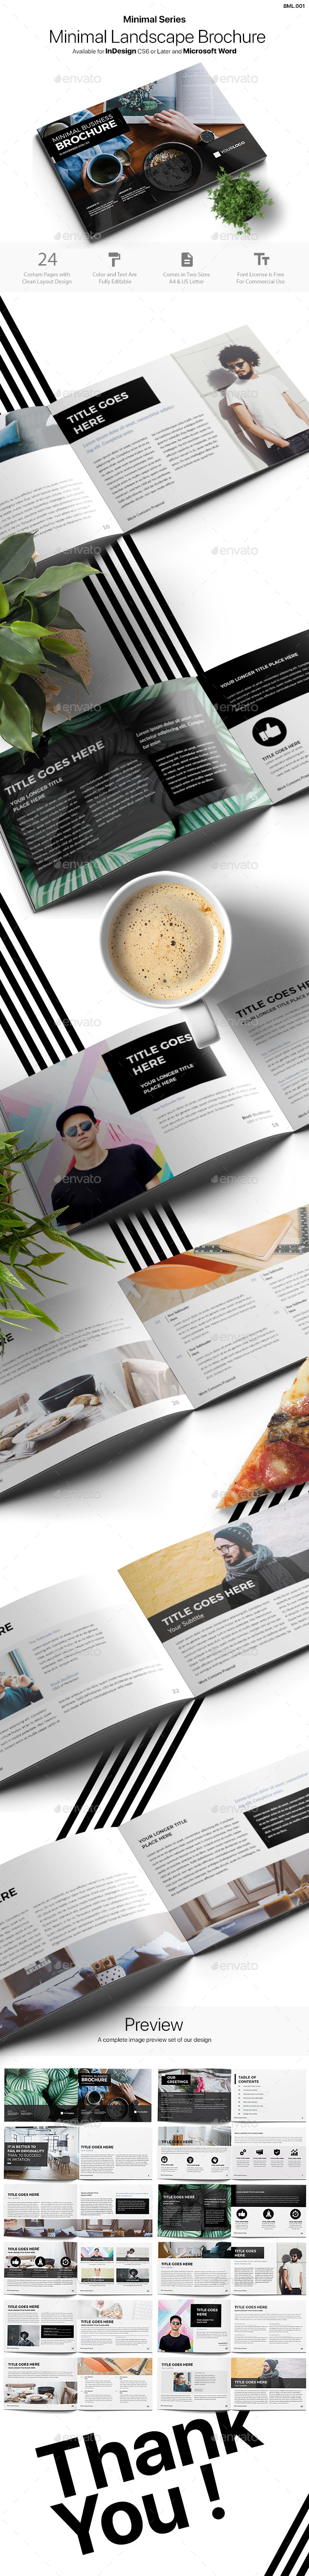 Minimal Landscape Brochure - Corporate Brochures